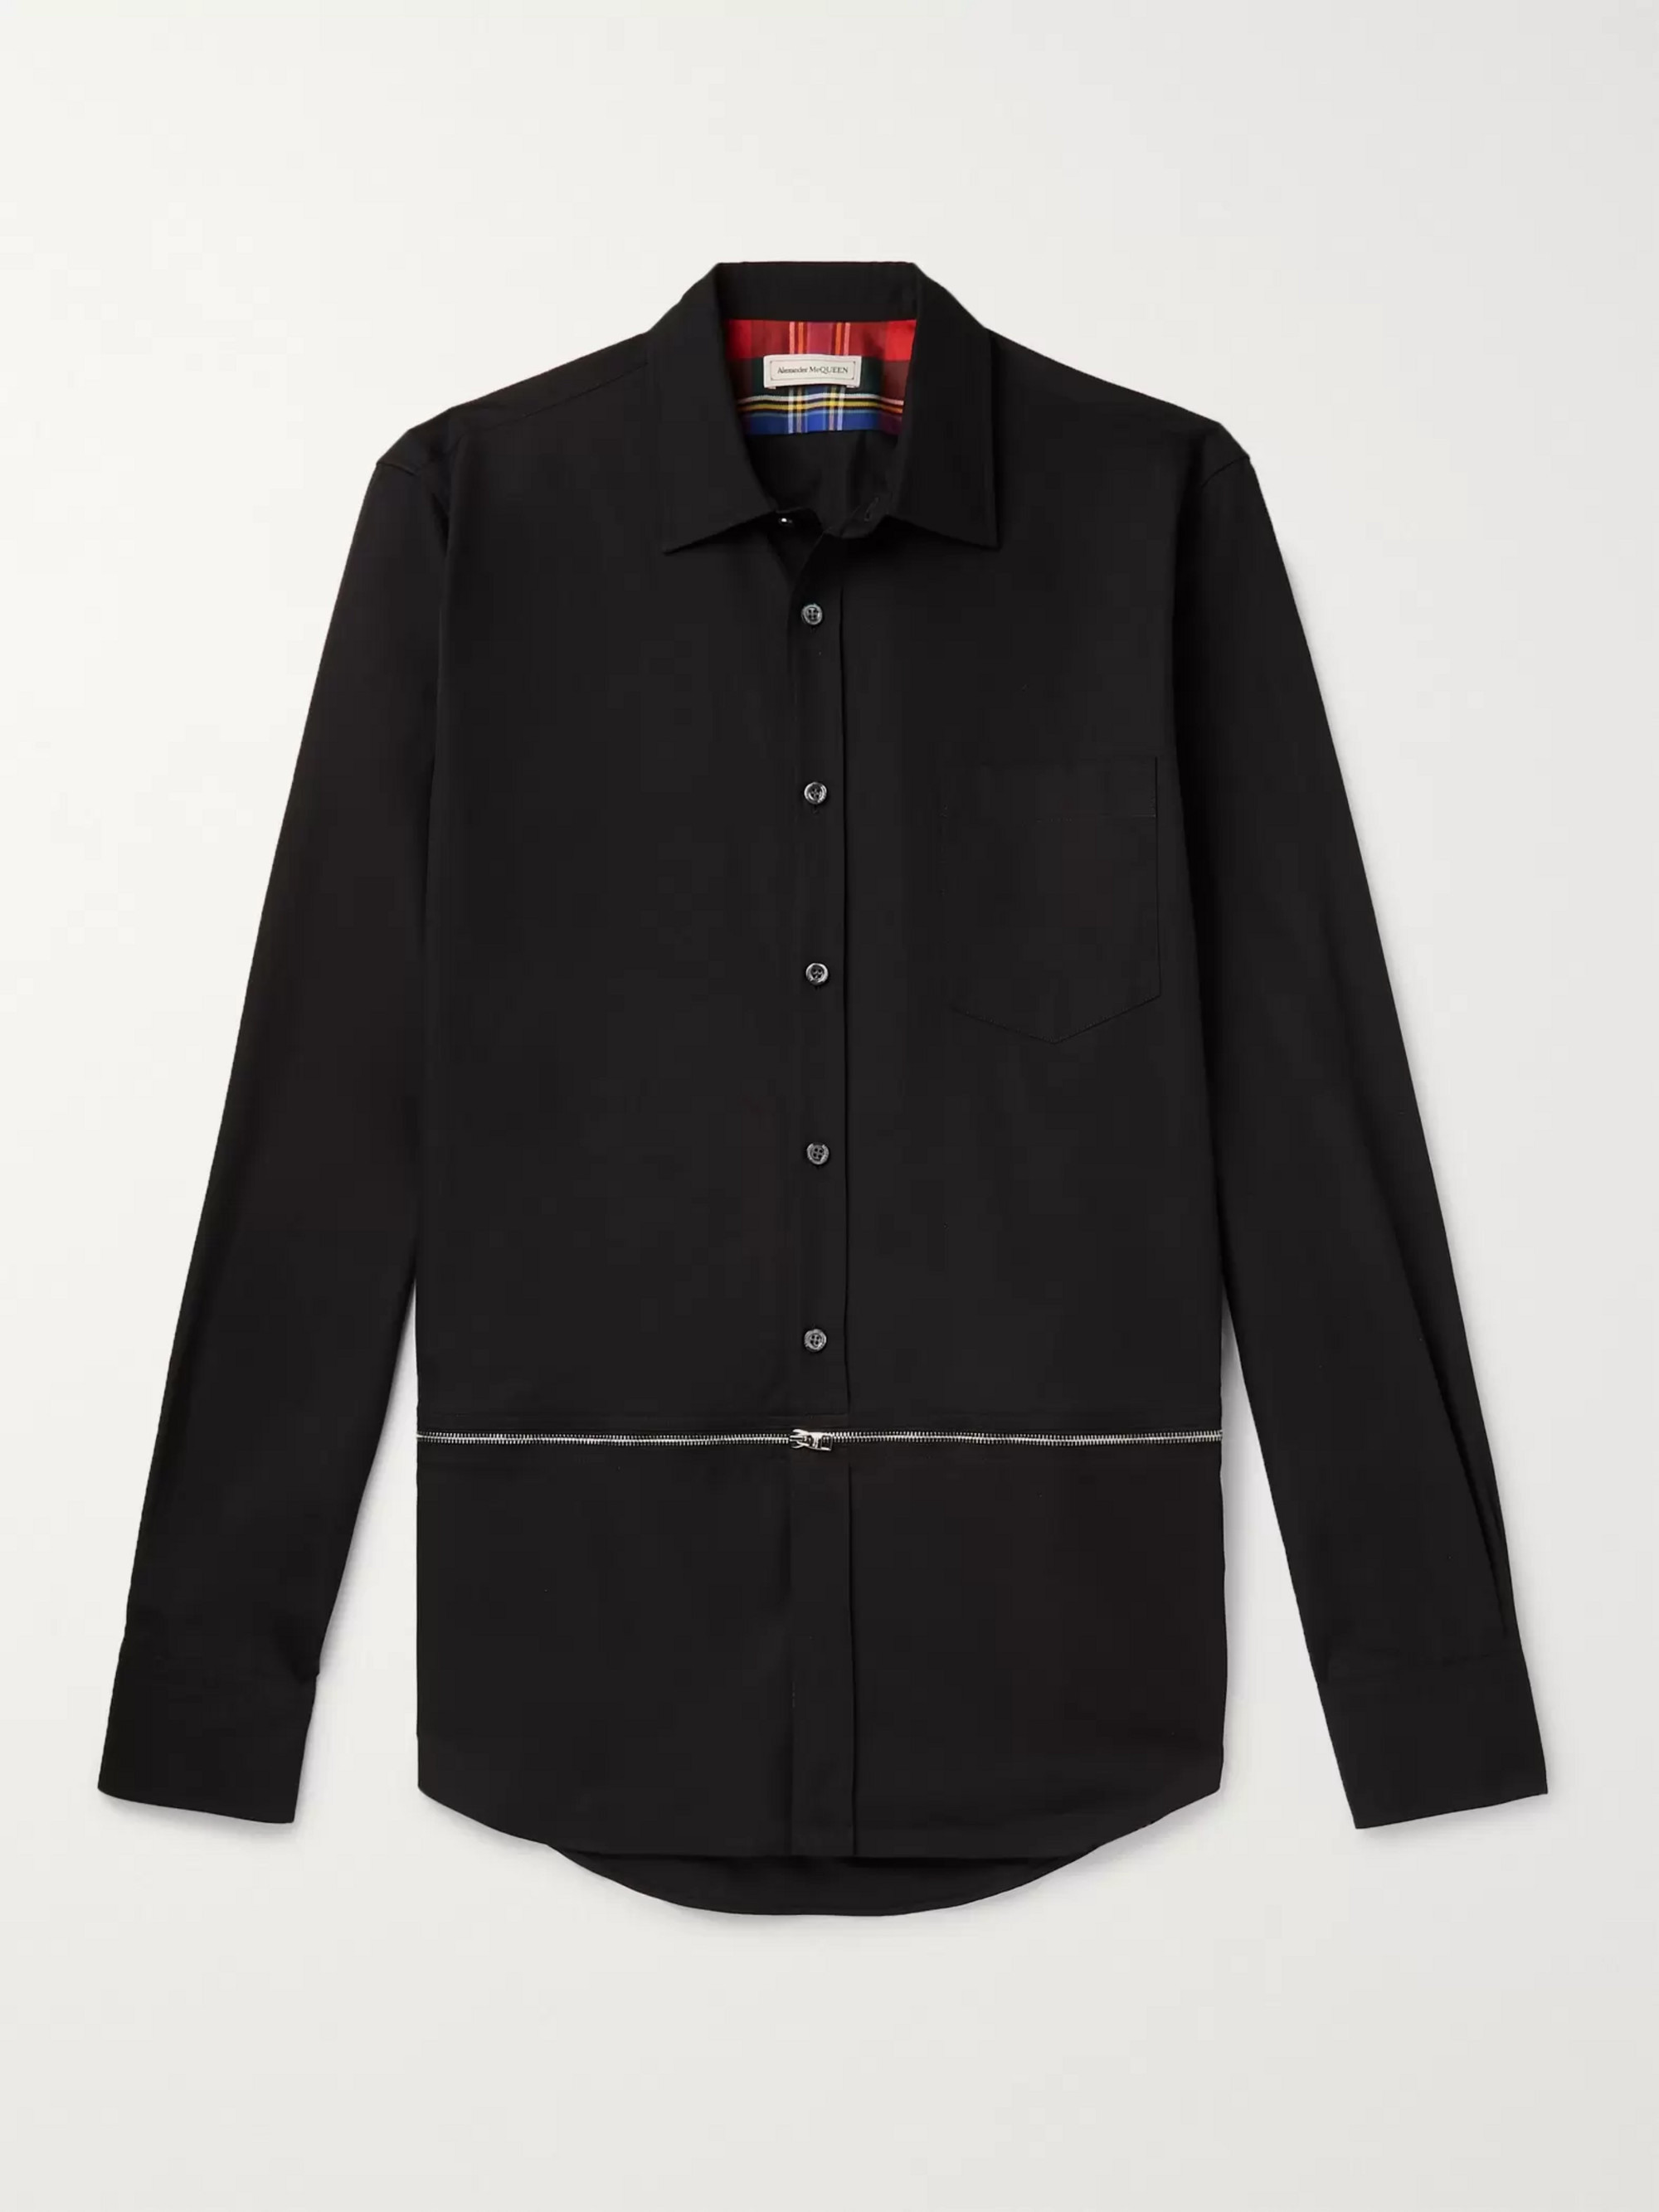 Alexander McQueen Slim-Fit Zip-Detailed Cotton-Poplin Shirt